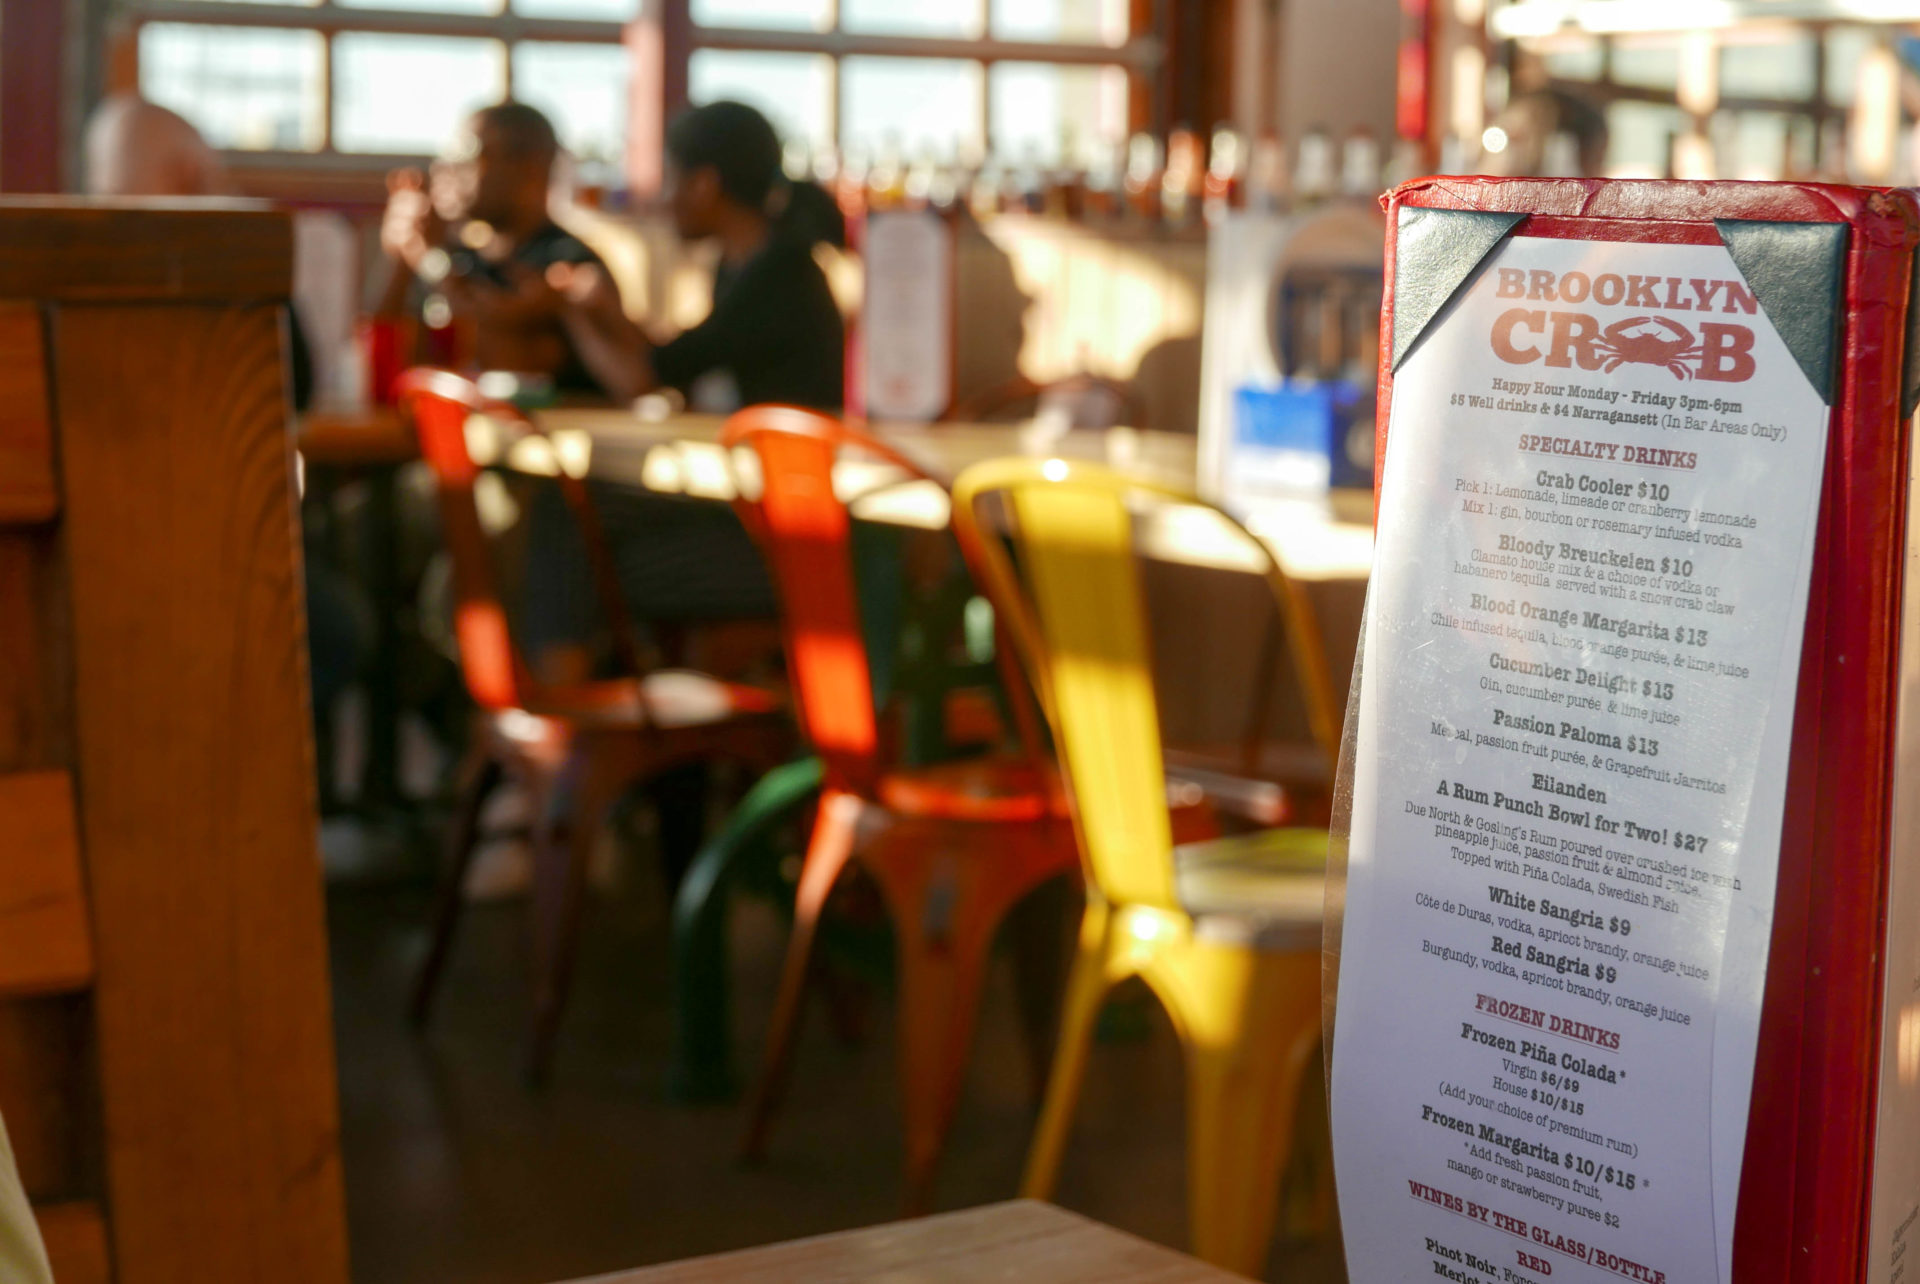 Brooklyn Crab is one of our favorite places to eat after Plumb Beach.